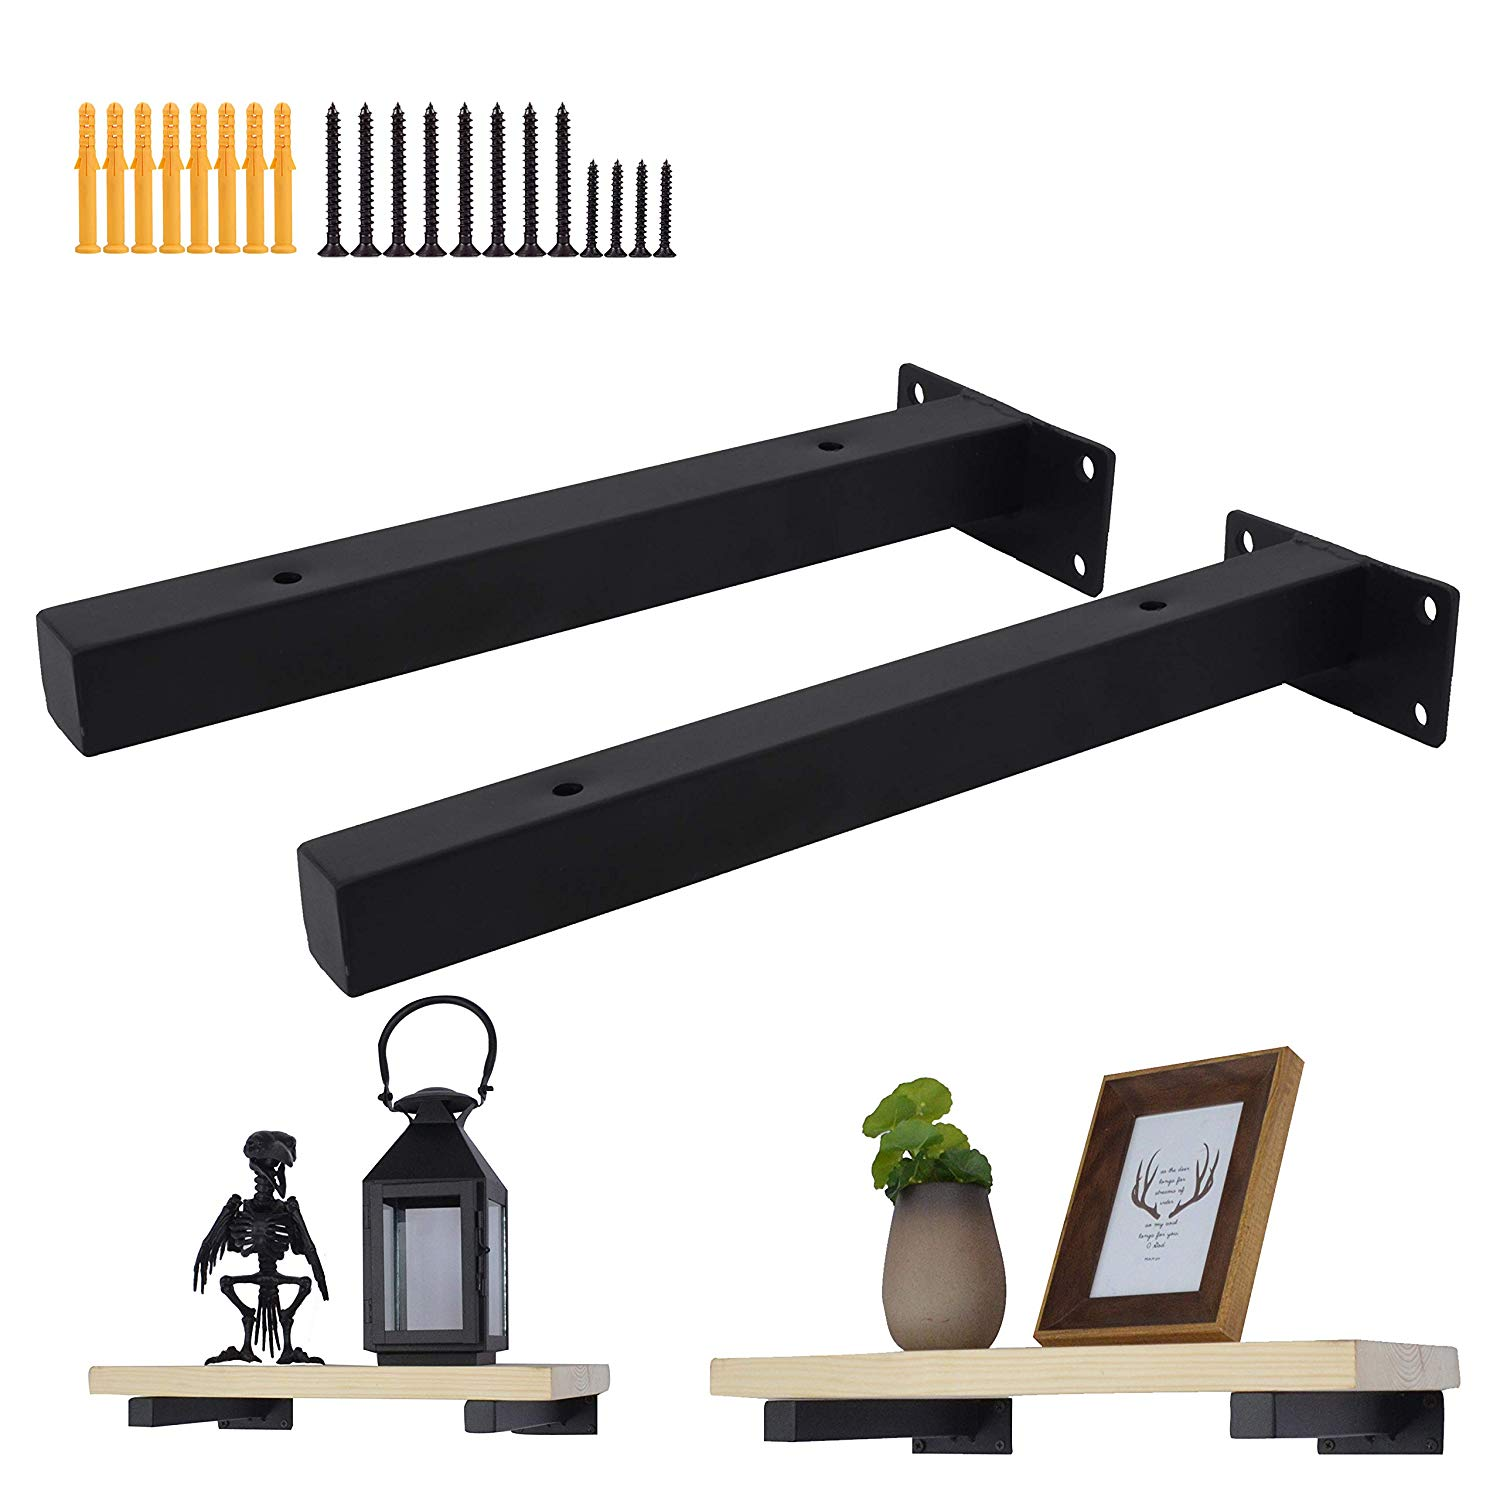 industrial black thicken floating shelf brackets retro zll wall mount bracket mounted supports includes screws anchors inch home metal coat hooks rustic brunschwig and fils